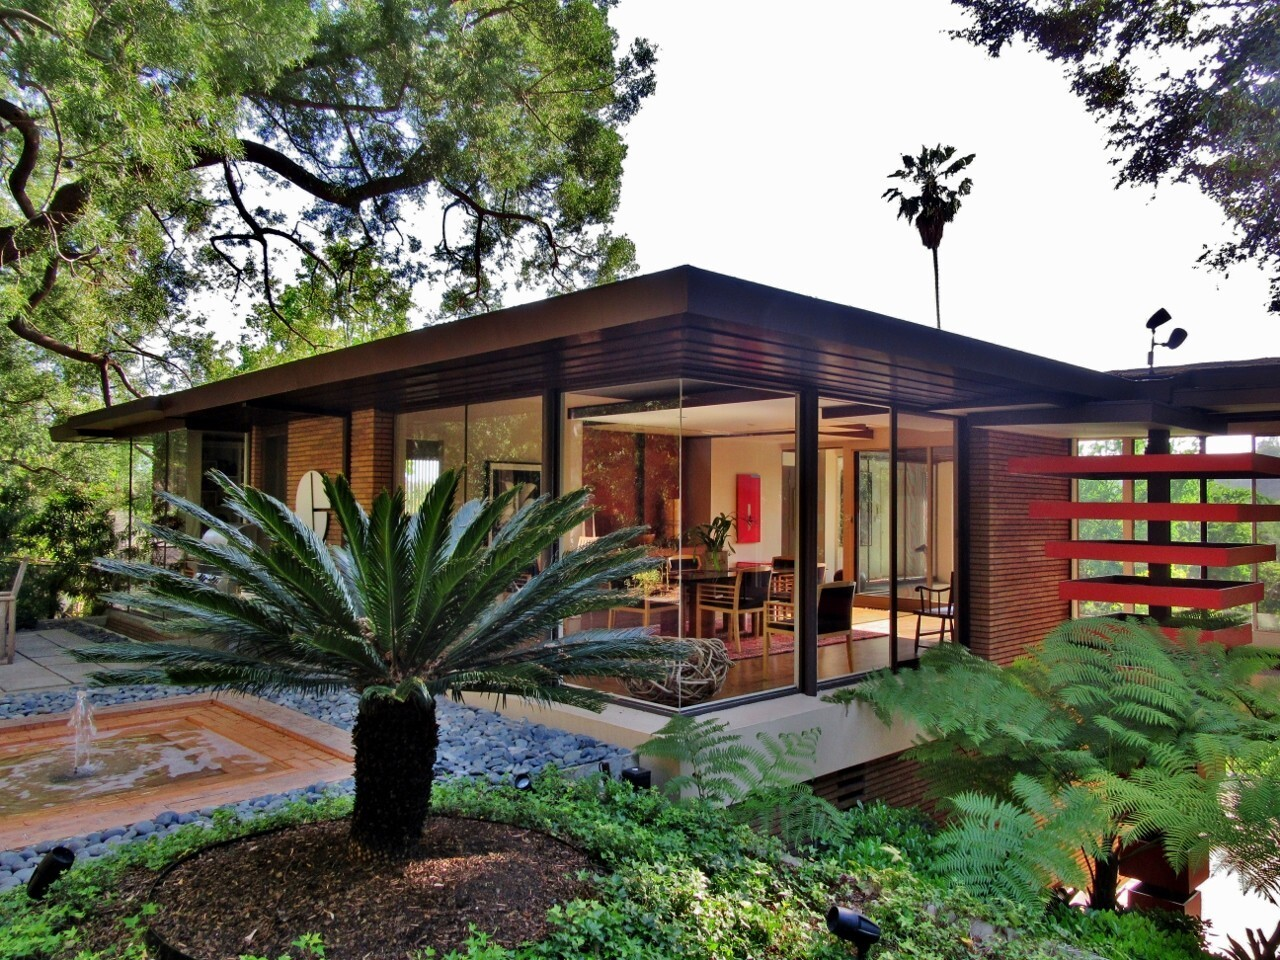 The W. Parker Lyon House, which was designed in 1948 by noted architect Thornton Ladd.